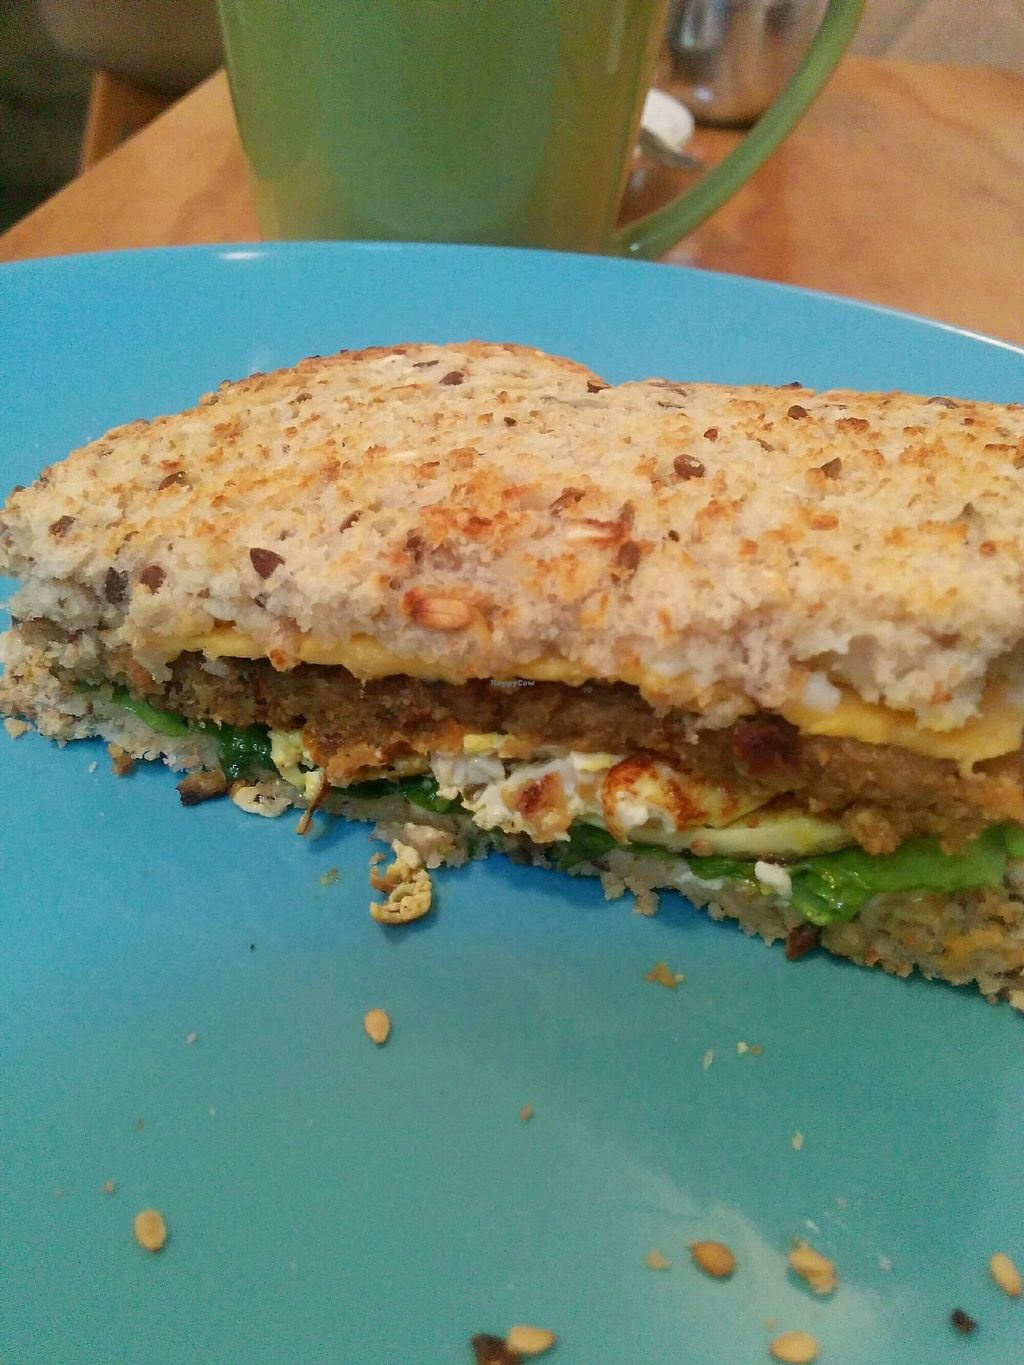 """Photo of Cali Cafe  by <a href=""""/members/profile/Bellalicious"""">Bellalicious</a> <br/>Breakfast sandwich, silken tofu, veg patty and it's delicious! <br/> April 10, 2018  - <a href='/contact/abuse/image/107821/383296'>Report</a>"""